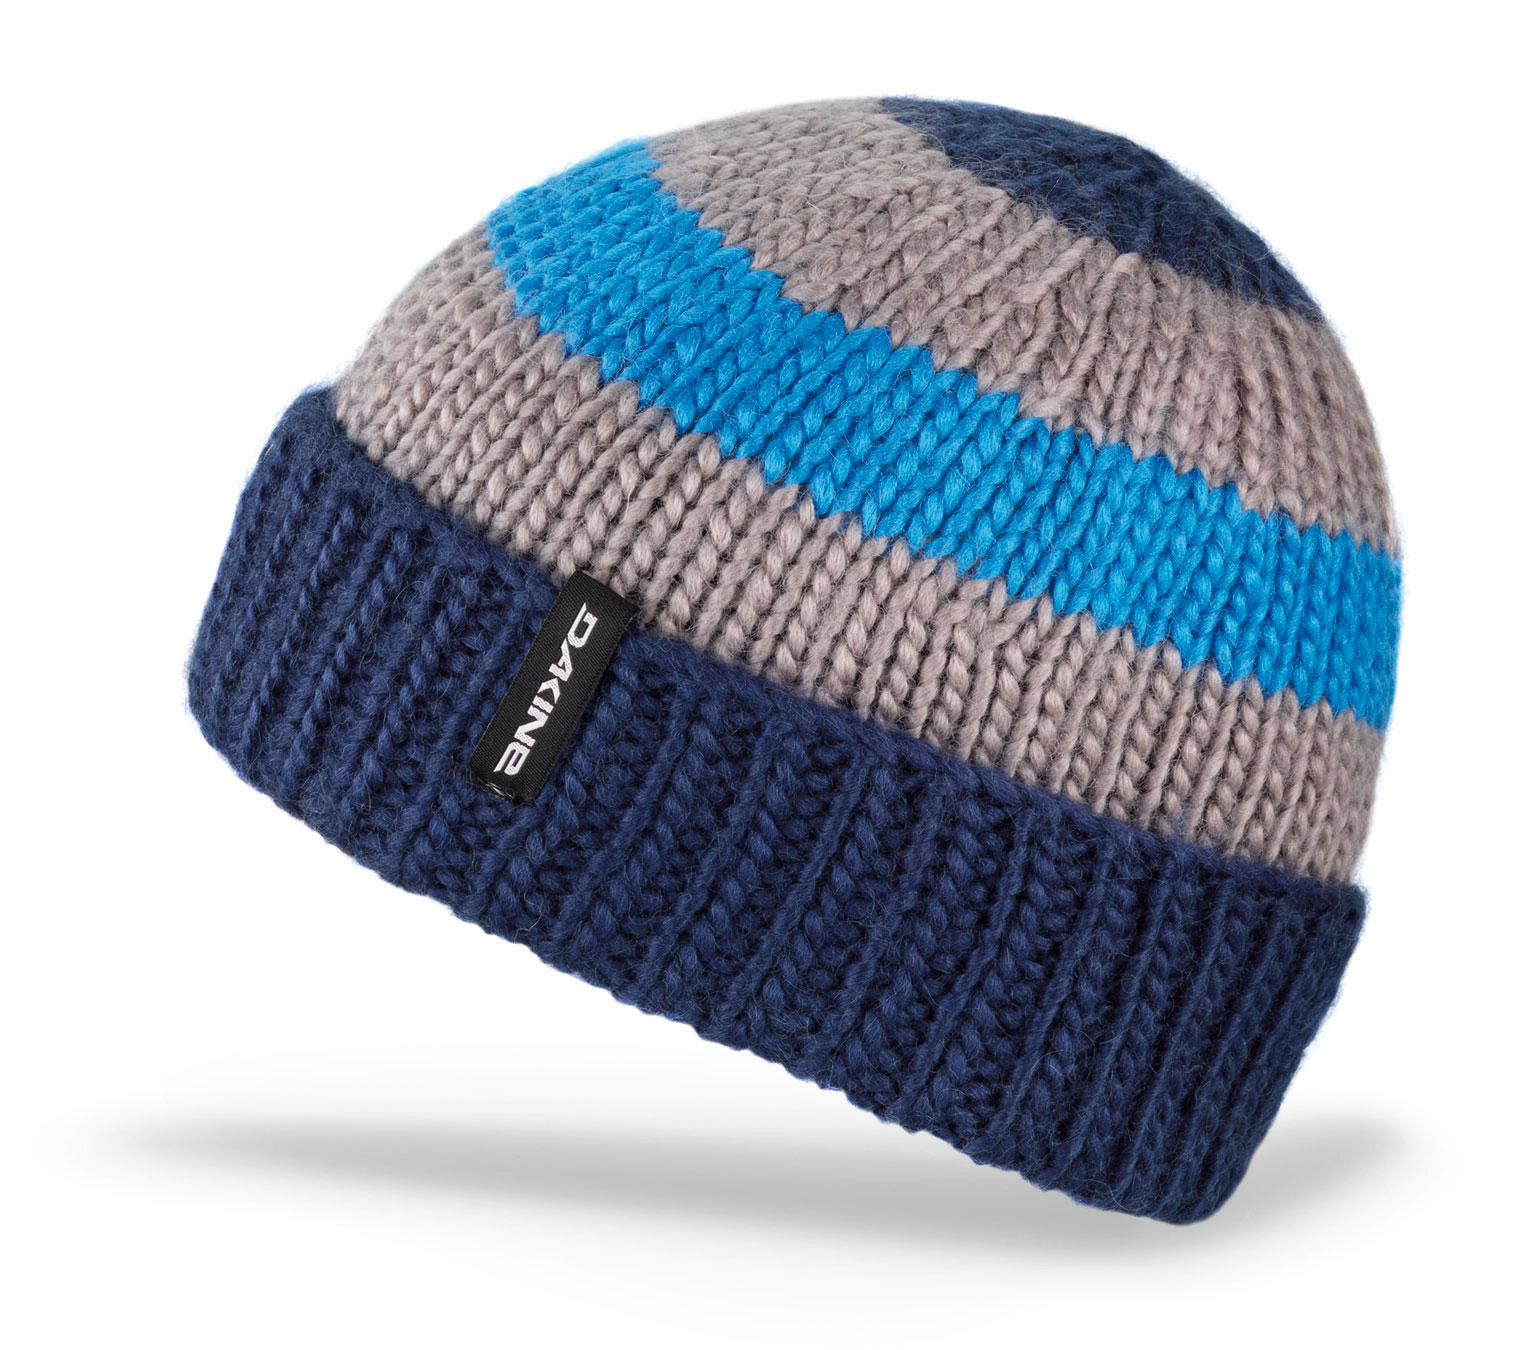 Snowboard Key Features of the Dakine Sven Beanie: Chunky hand knit with cuff Wool/acrylic blend Fleece inband - $13.96